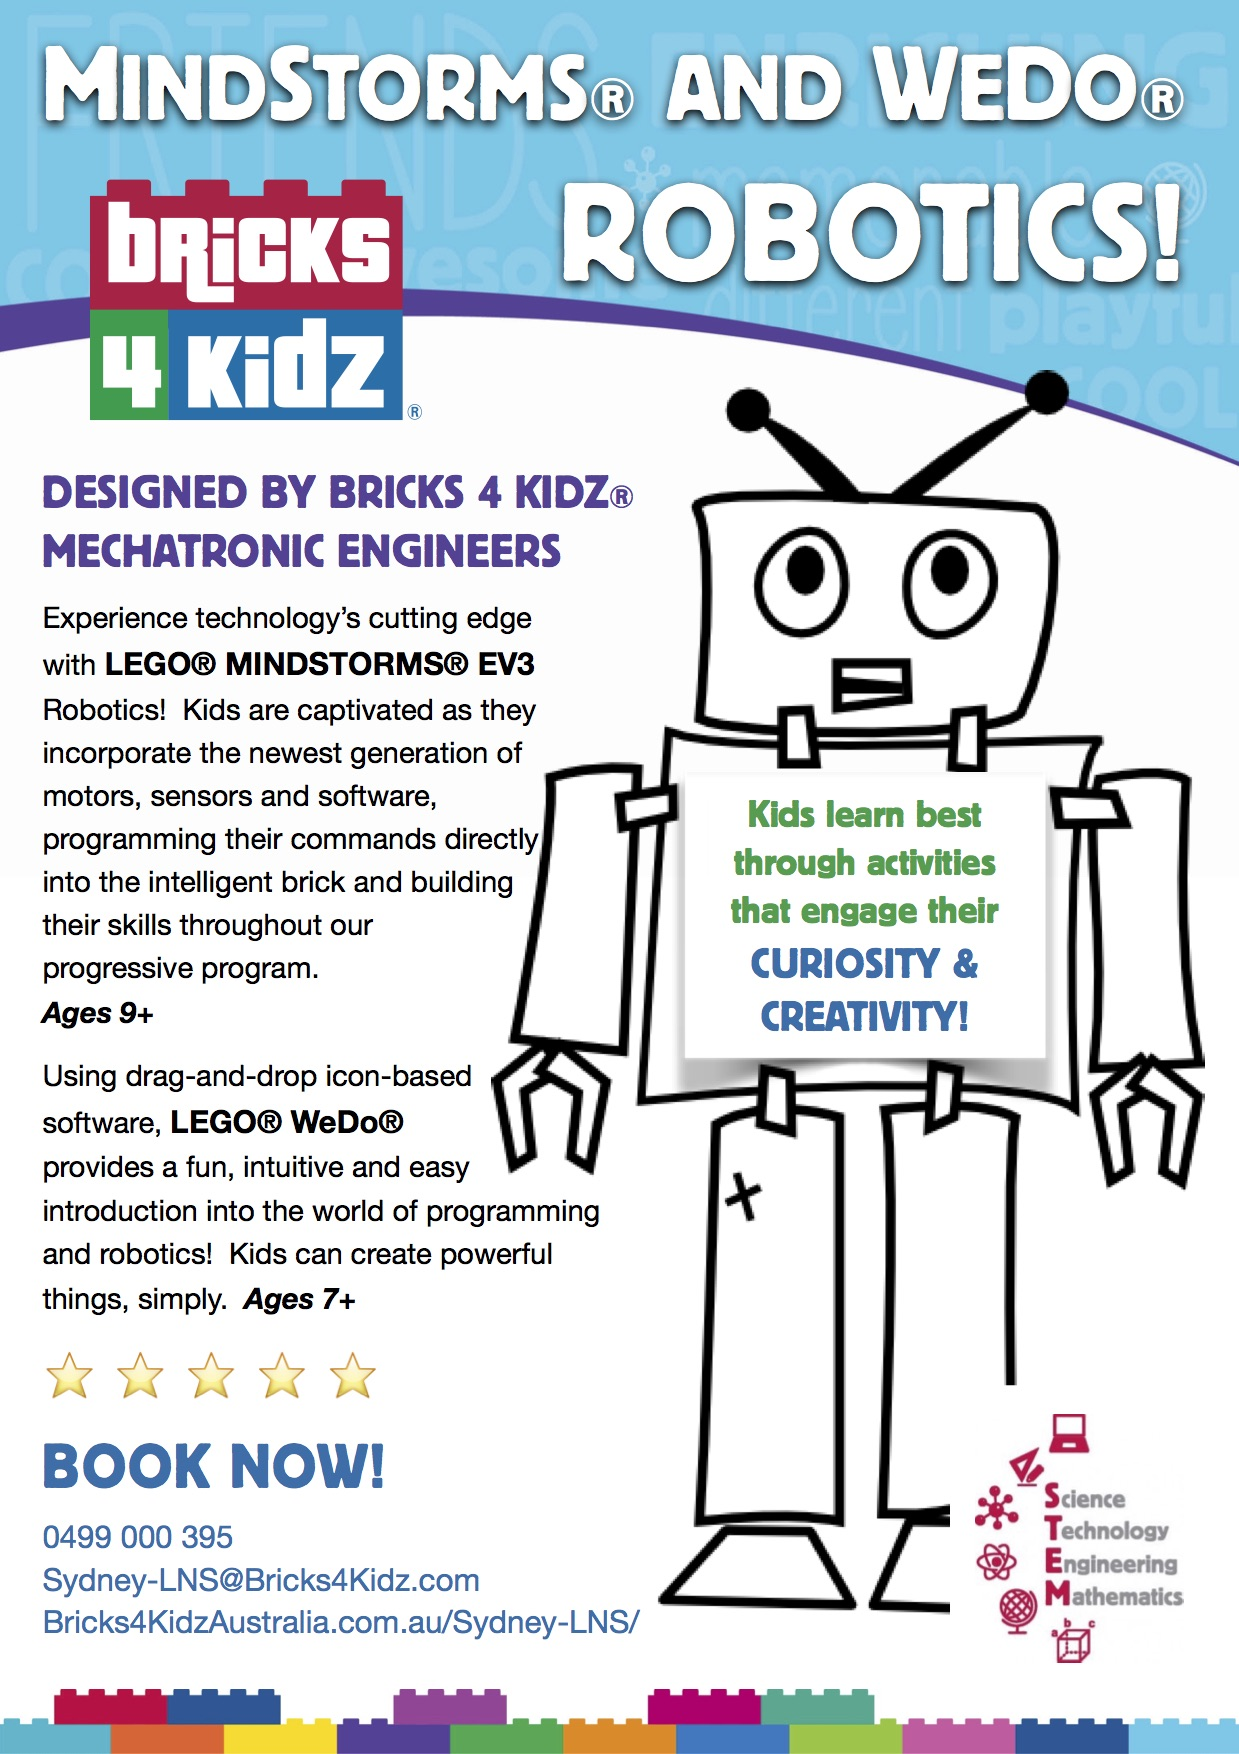 Our Robotics Programs with LEGO® MindStorms® and WeDo® 